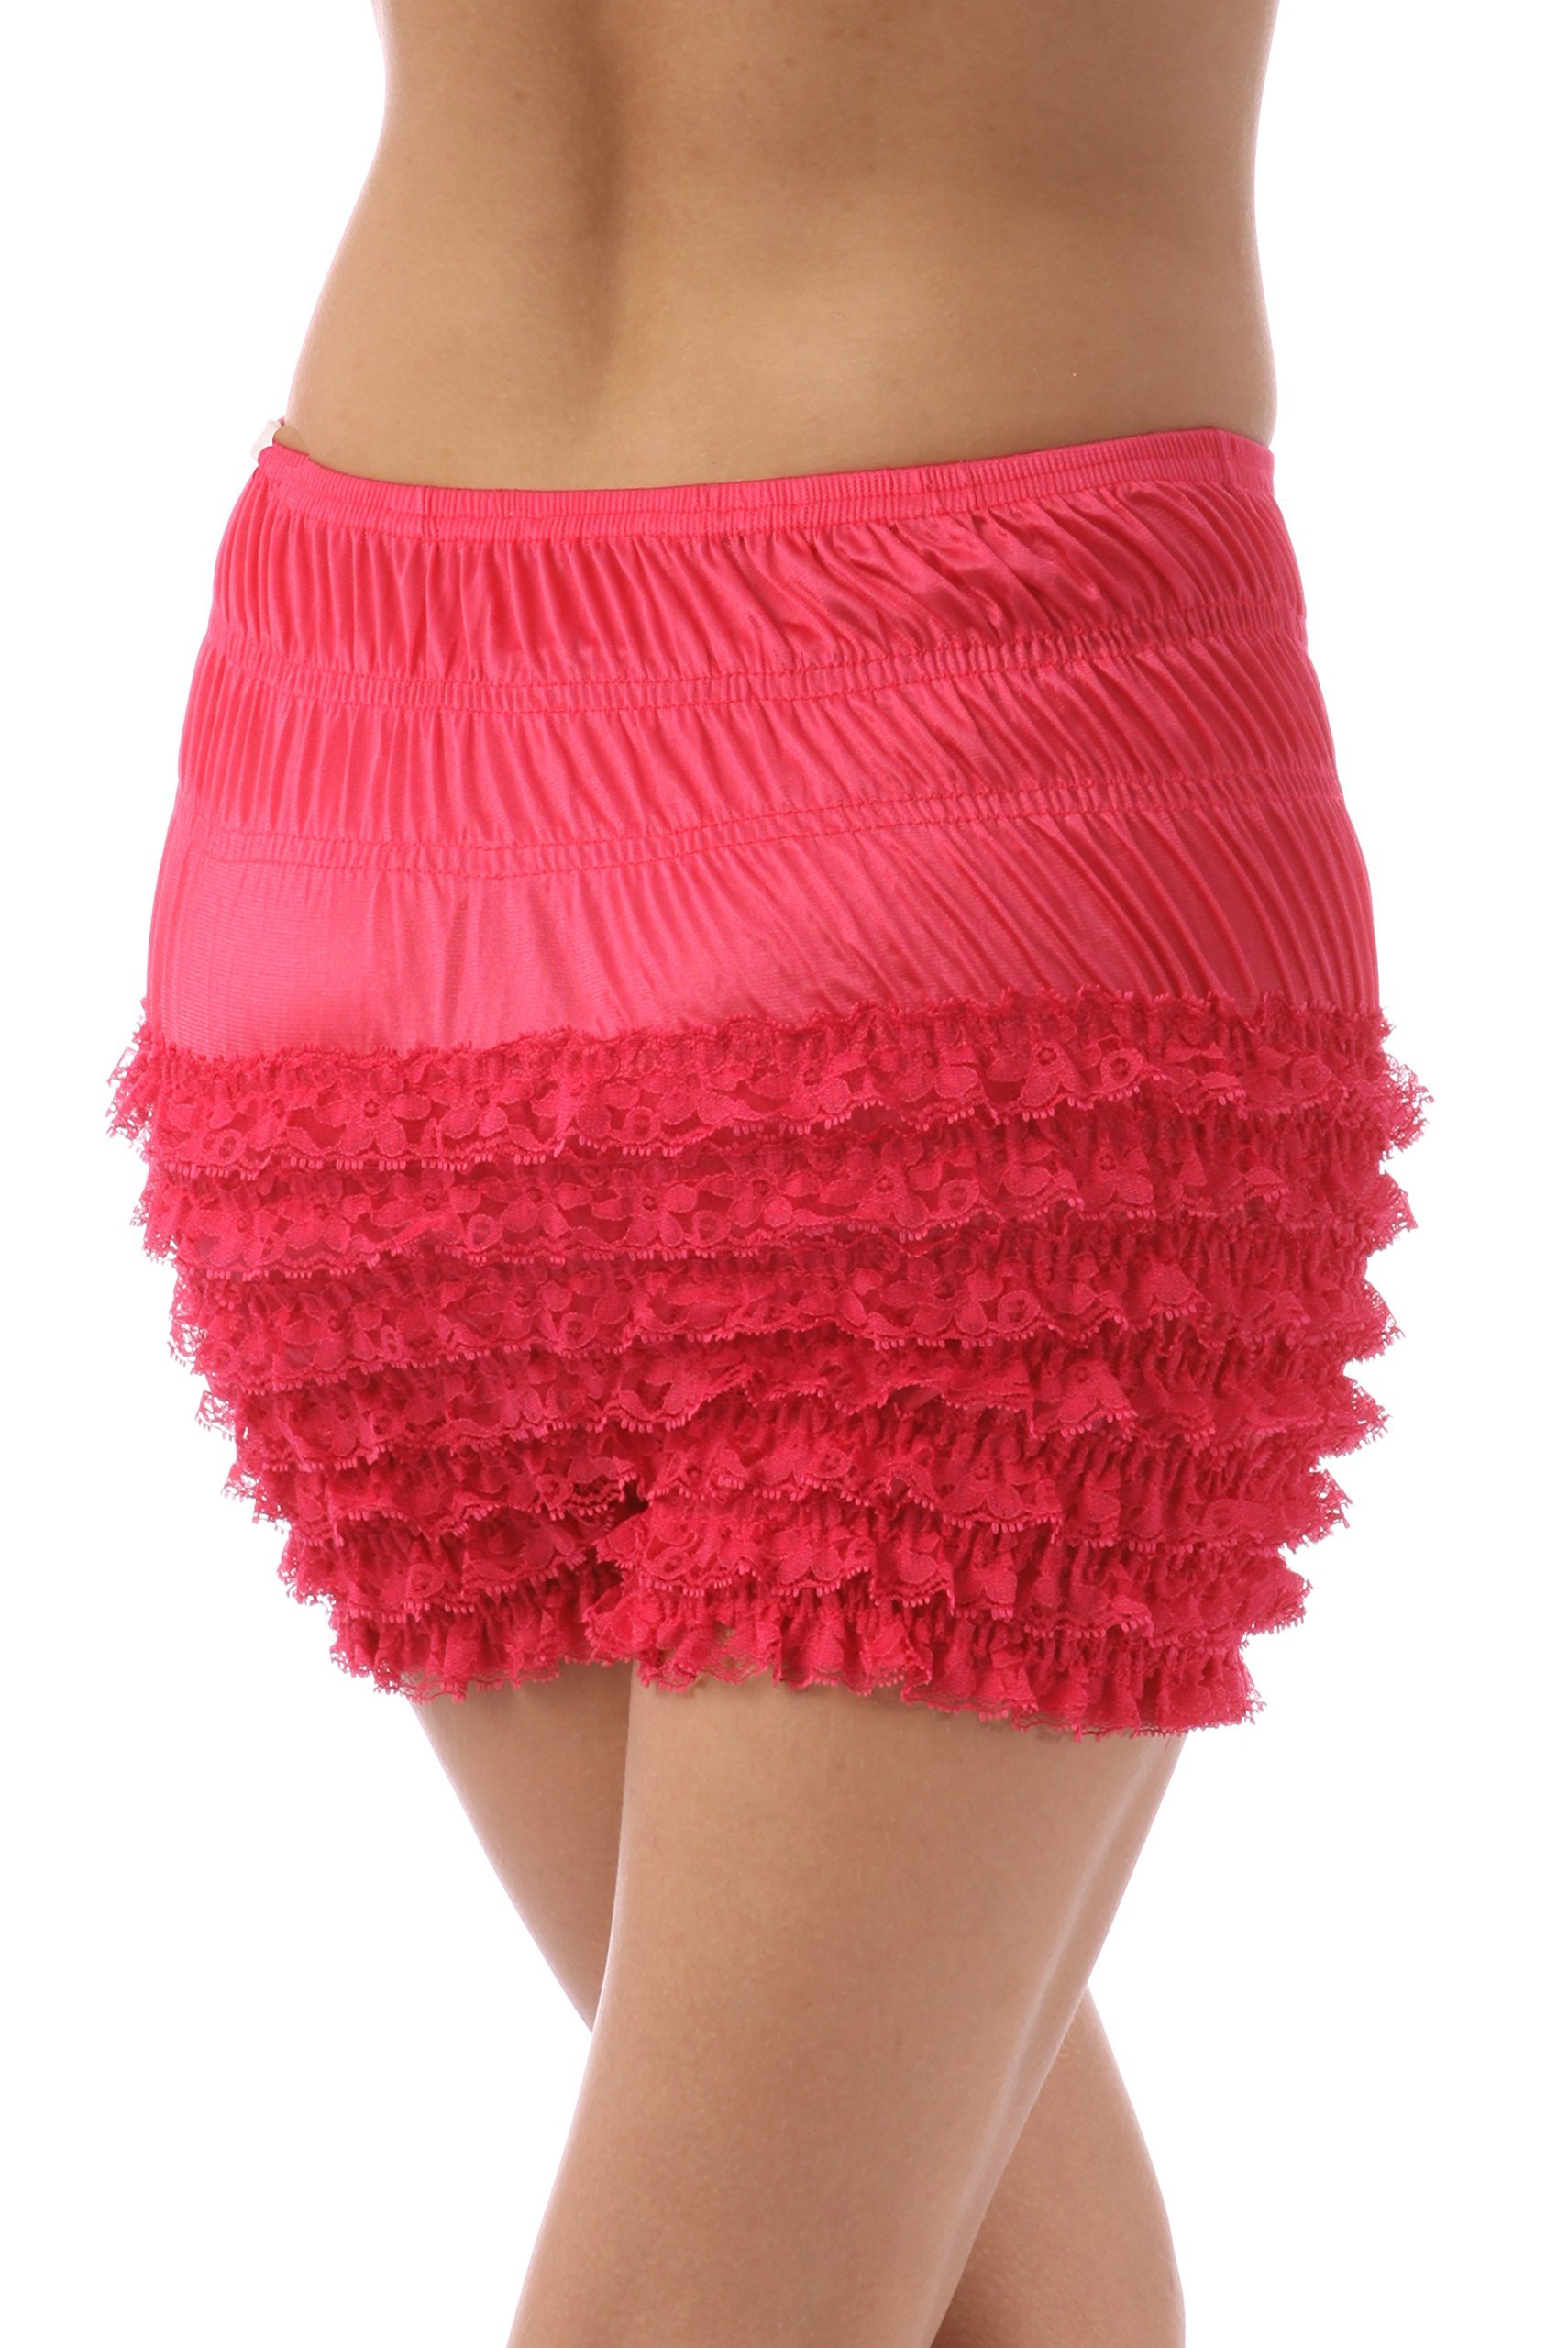 Malco Modes Womens Sexy Ruffle Panties Tanga Dance Bloomers Sissy Booty Shorts (Large, Raspberry) by Malco Modes